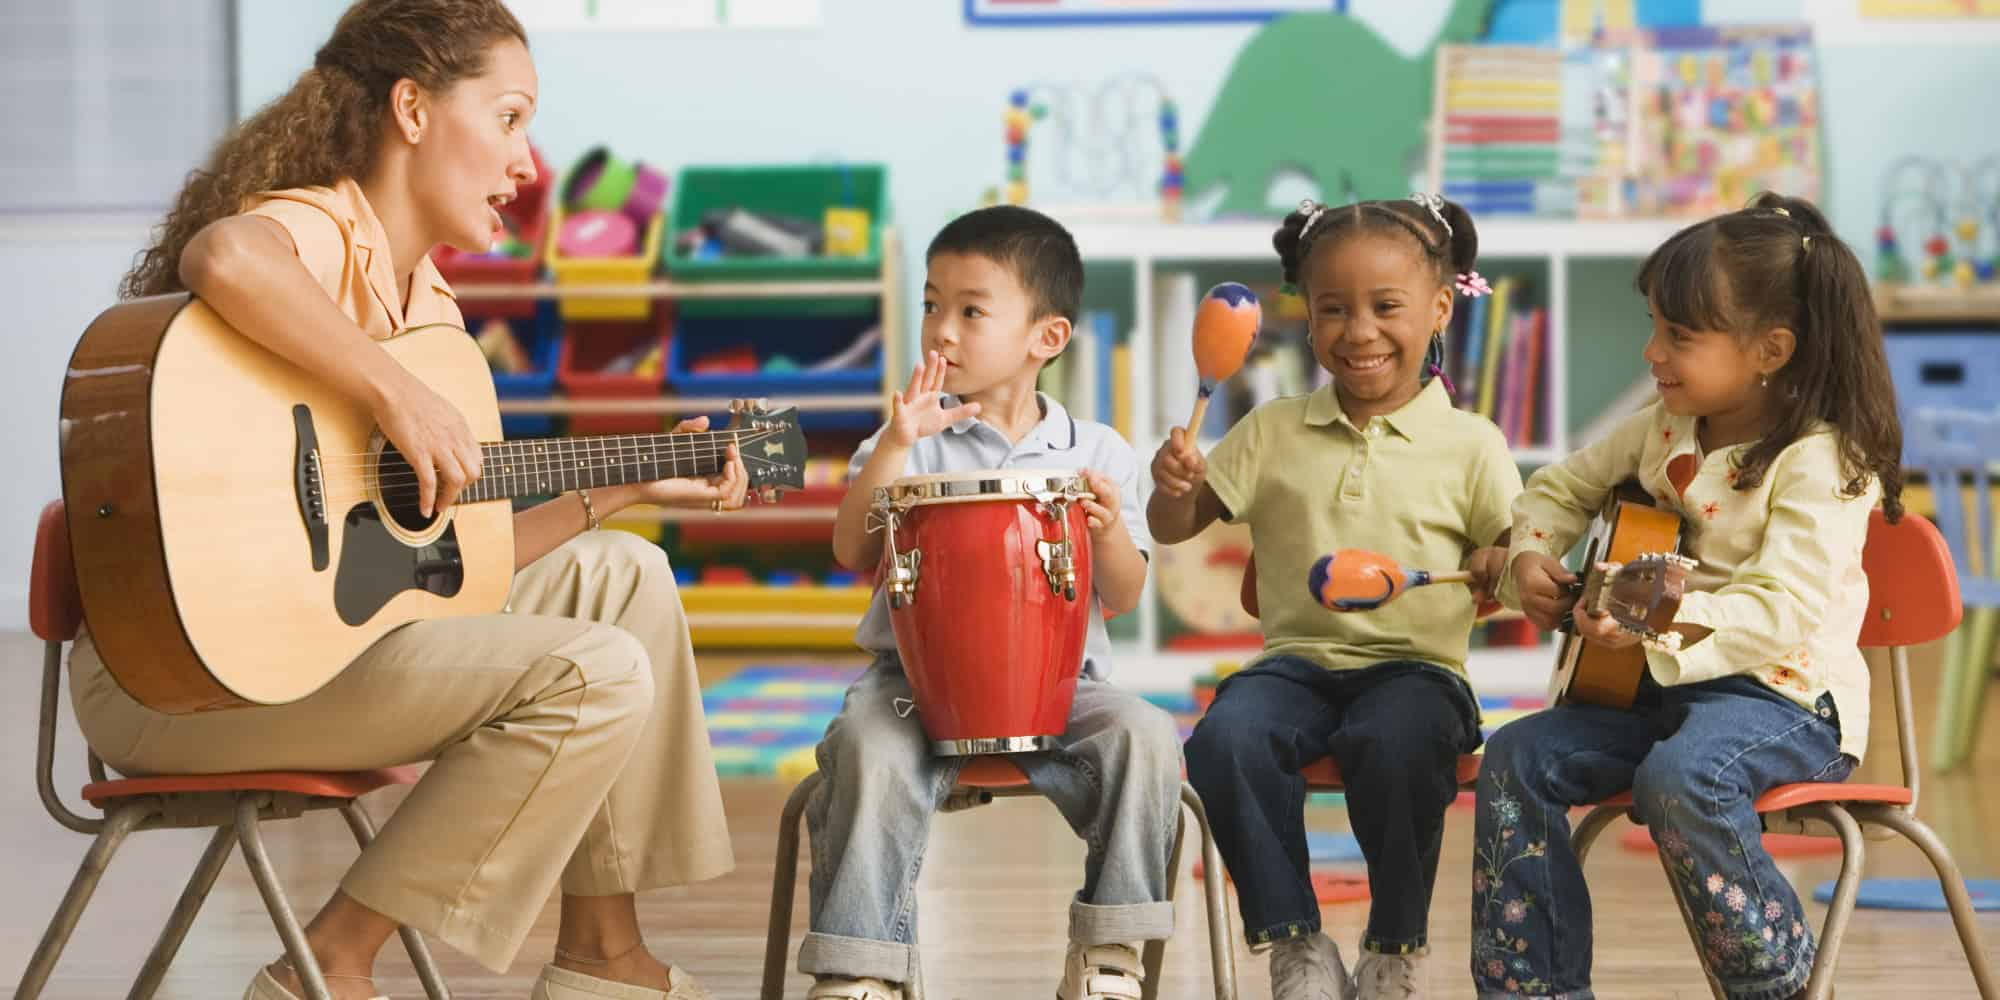 The 6 Benefits of Music Lessons - Parents